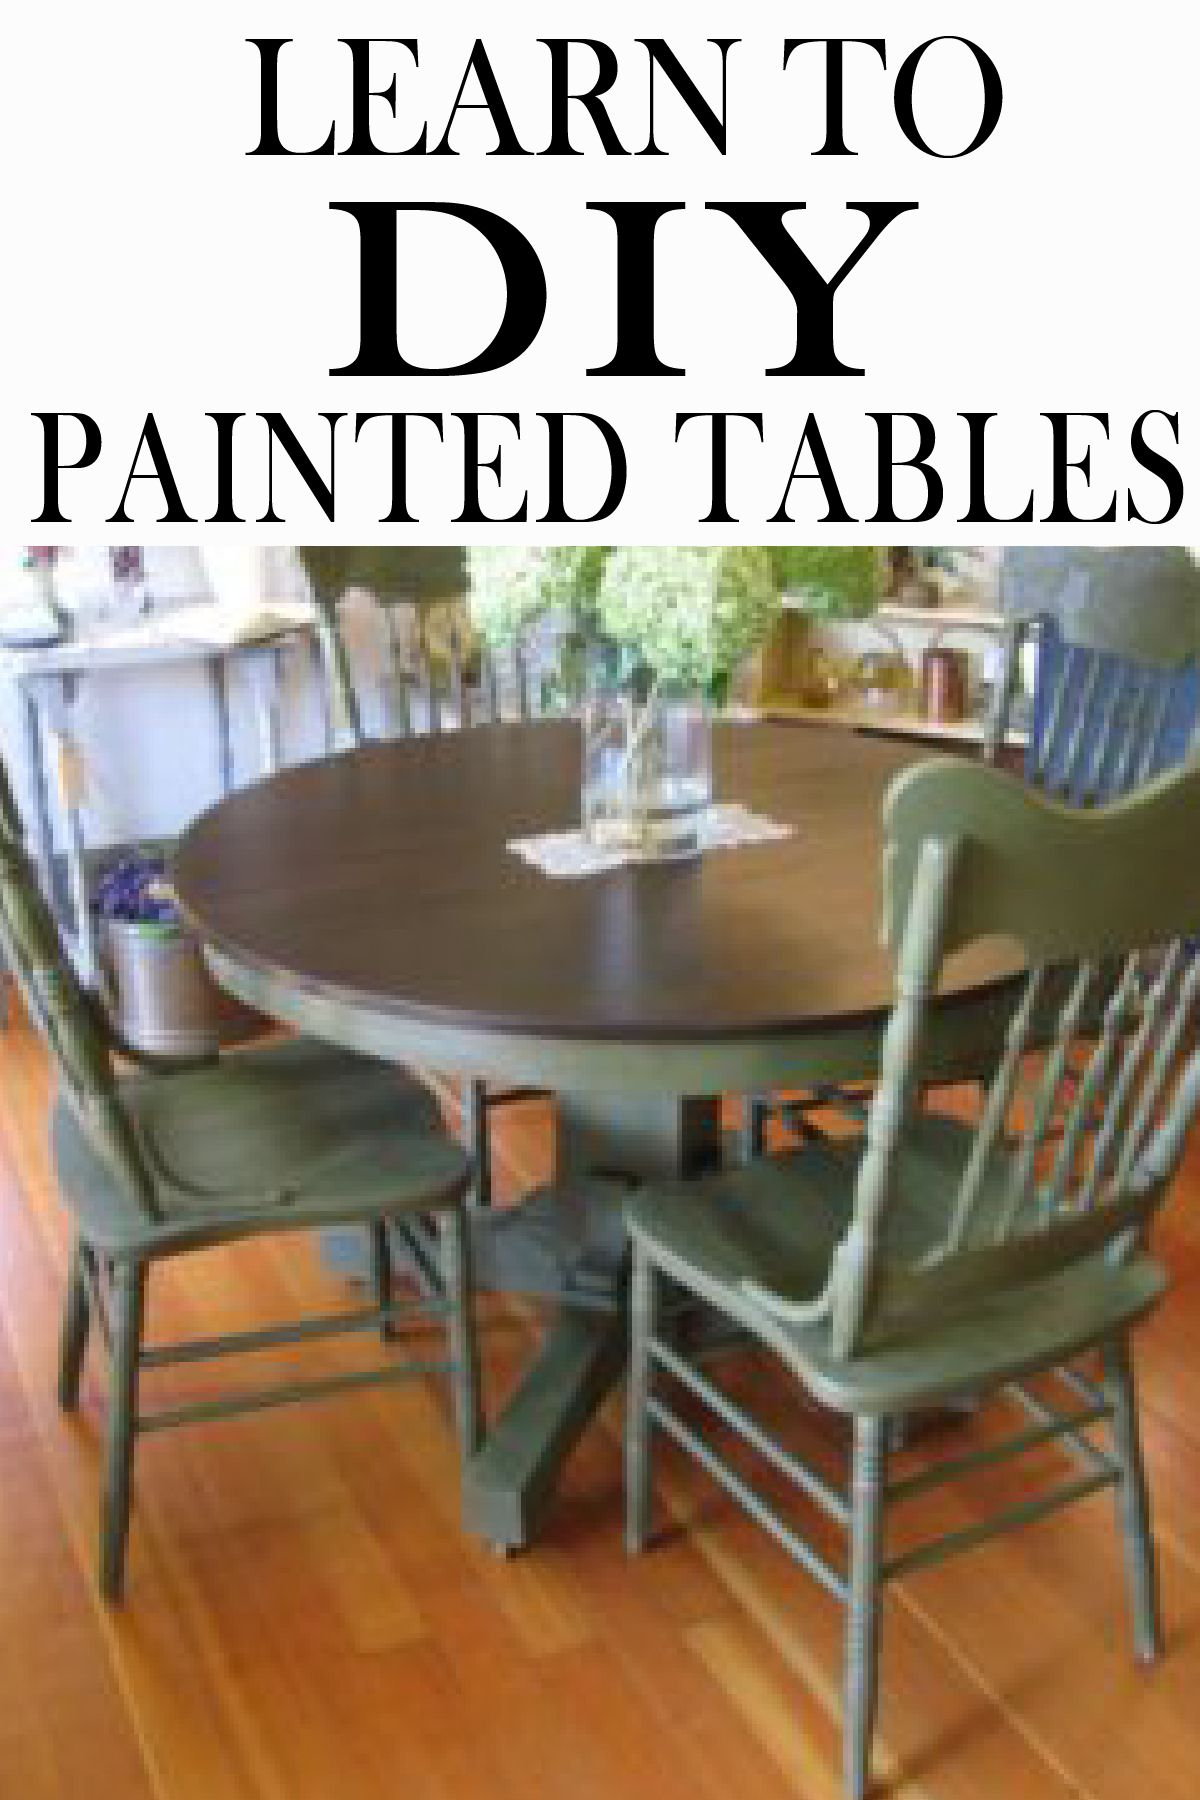 7 Common Mistakes Made Painting Kitchen Tables Painted Furniture Ideas Refinishing Kitchen Tables Painted Kitchen Tables Kitchen Table Wood